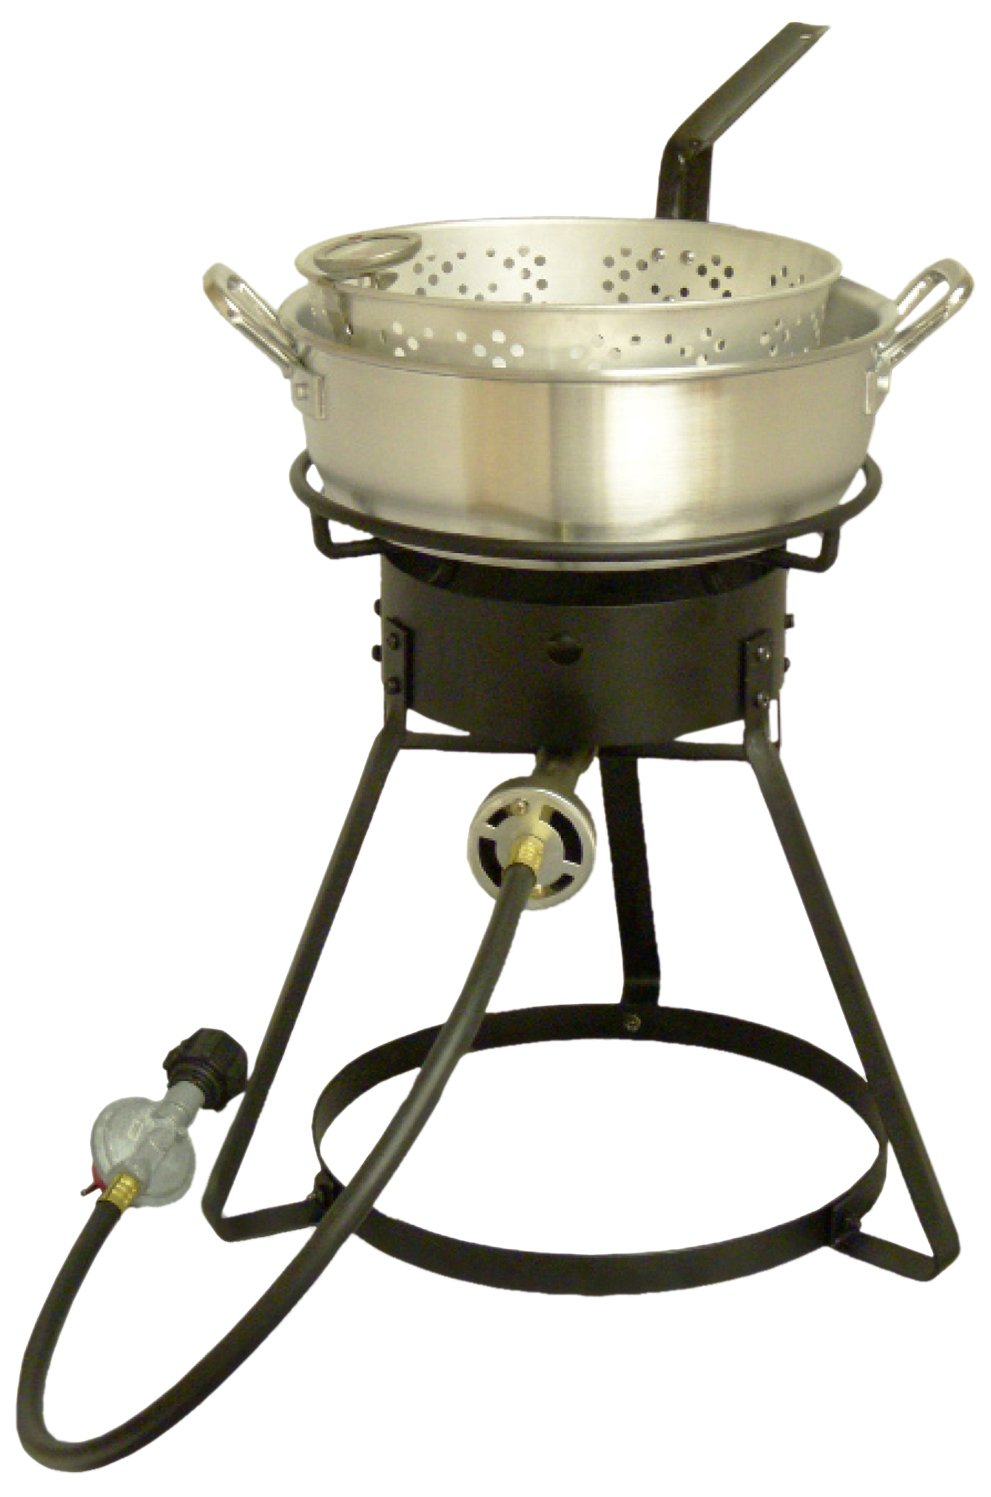 King Kooker 1642 16-Inch Bolt Together Outdoor Propane Cooker Package with Aluminum Fry Pan